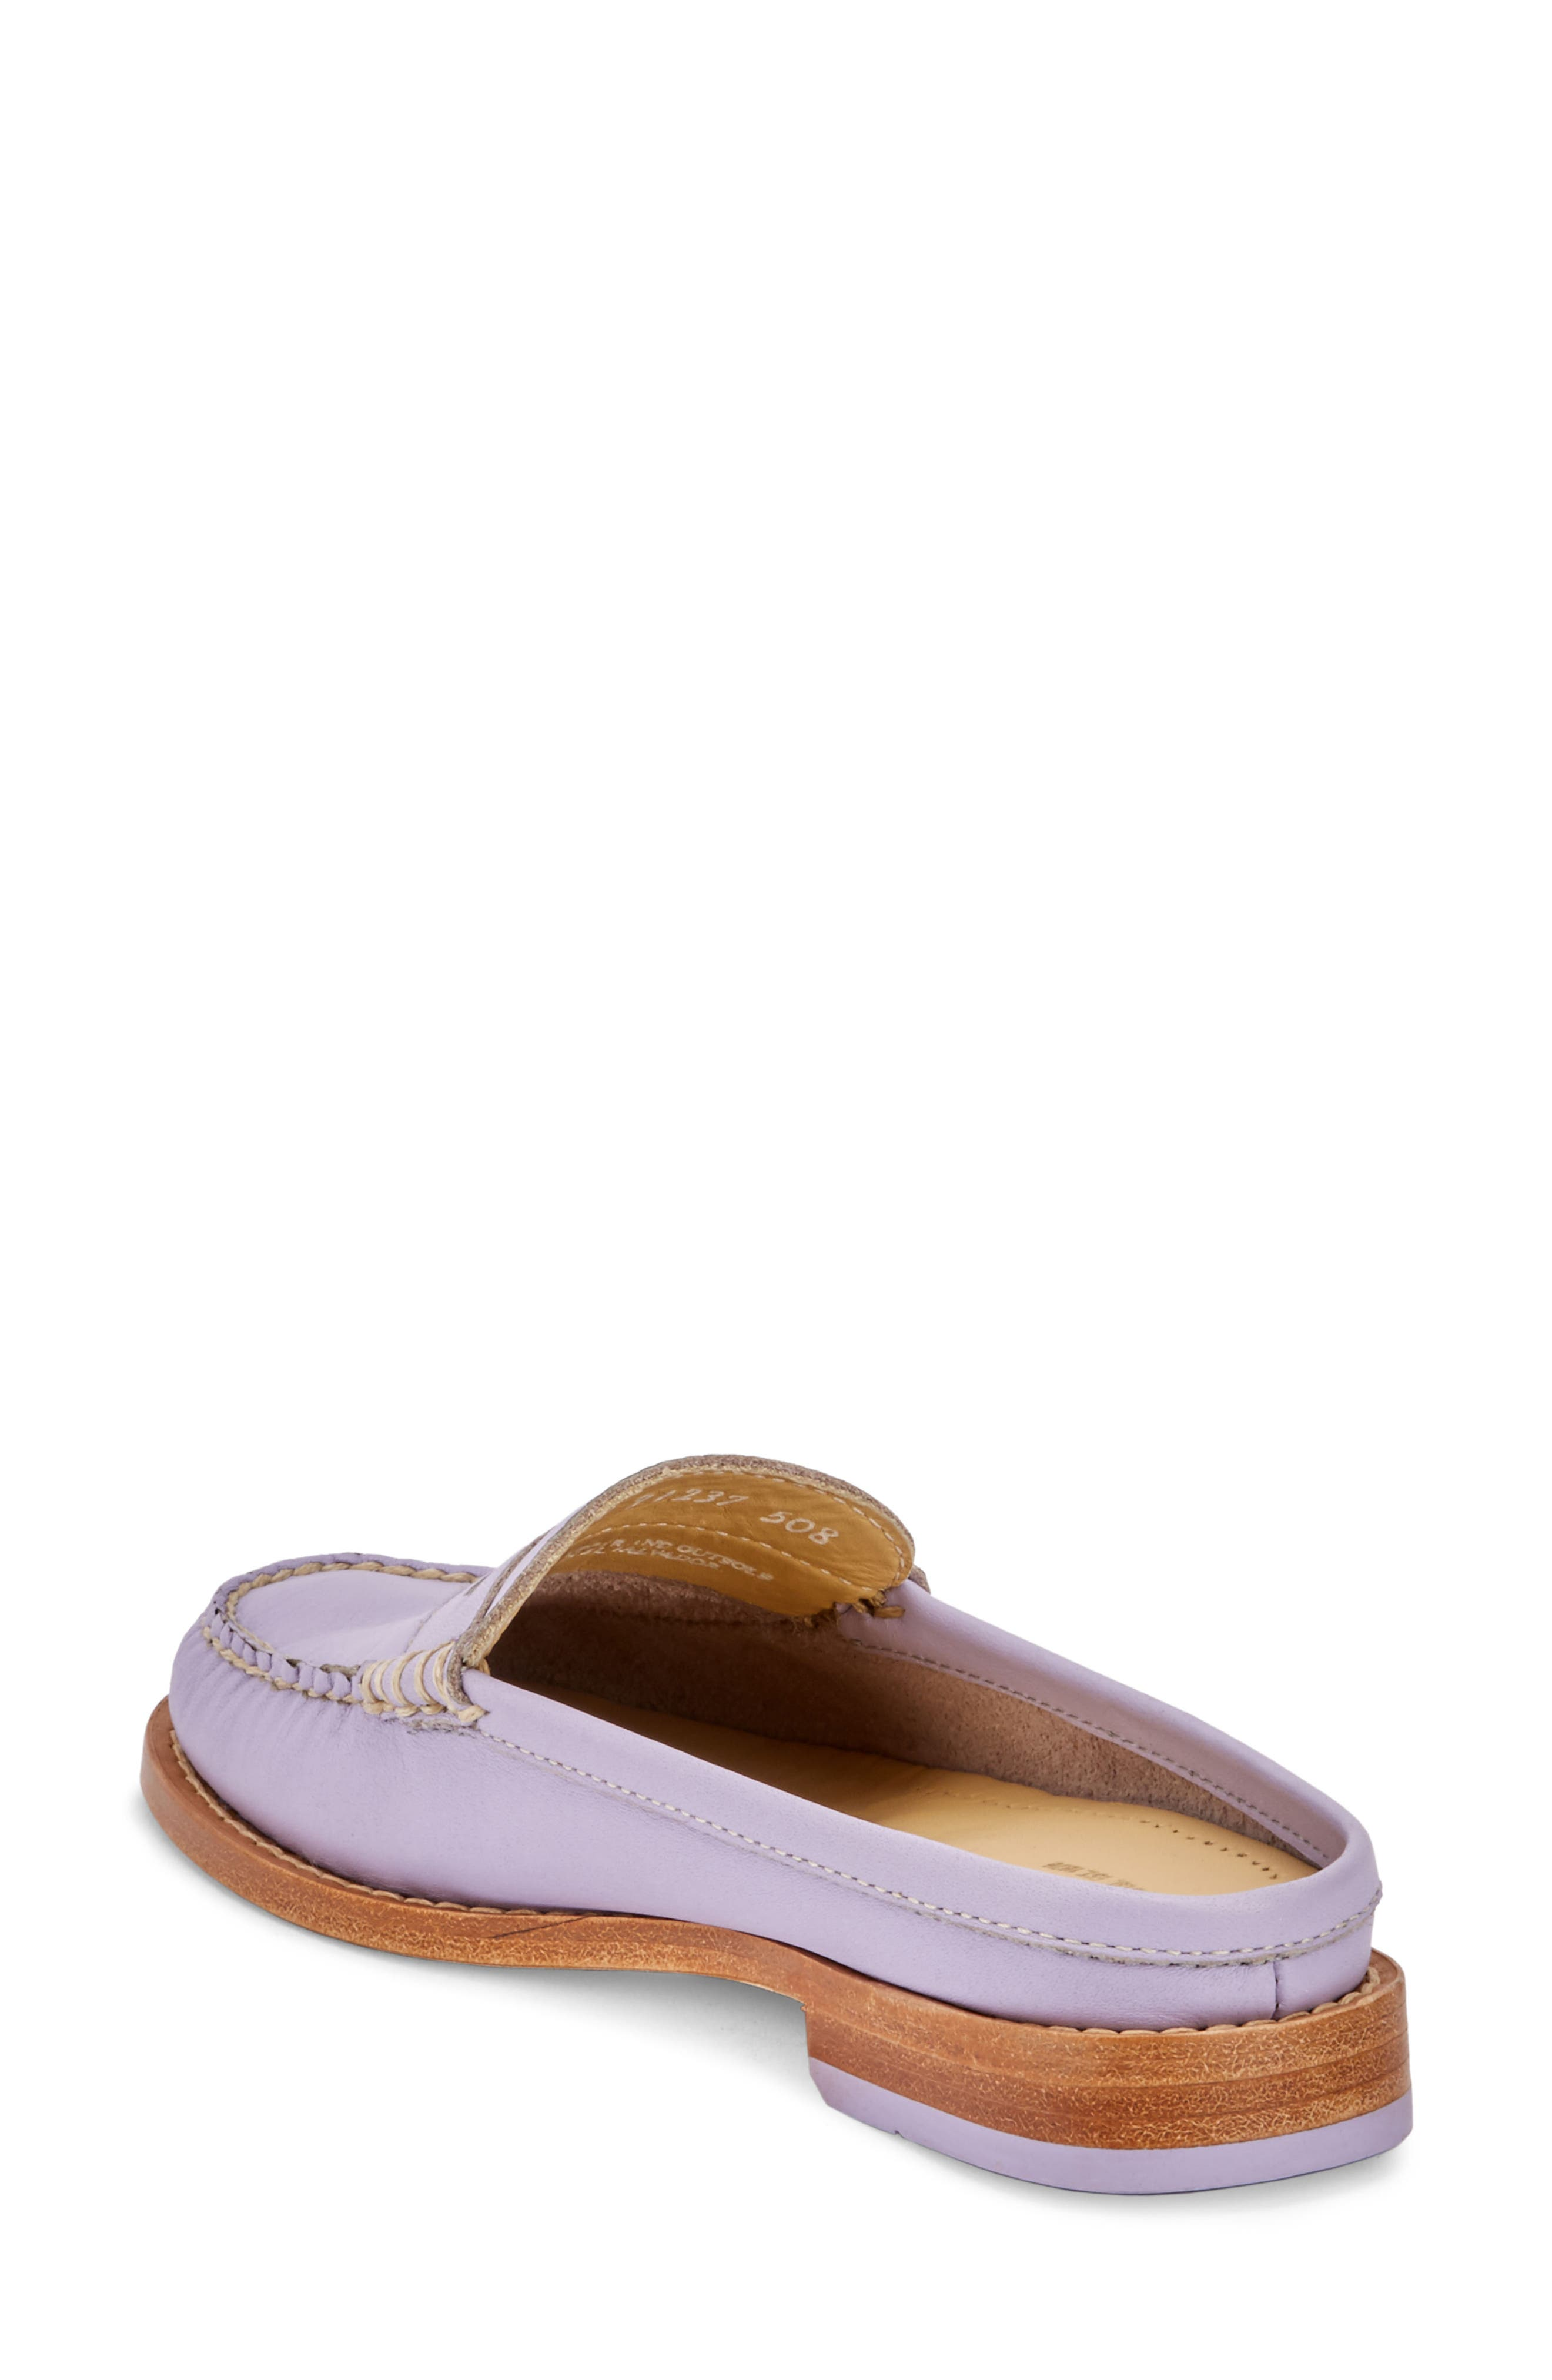 Wynn Loafer Mule,                             Alternate thumbnail 36, color,